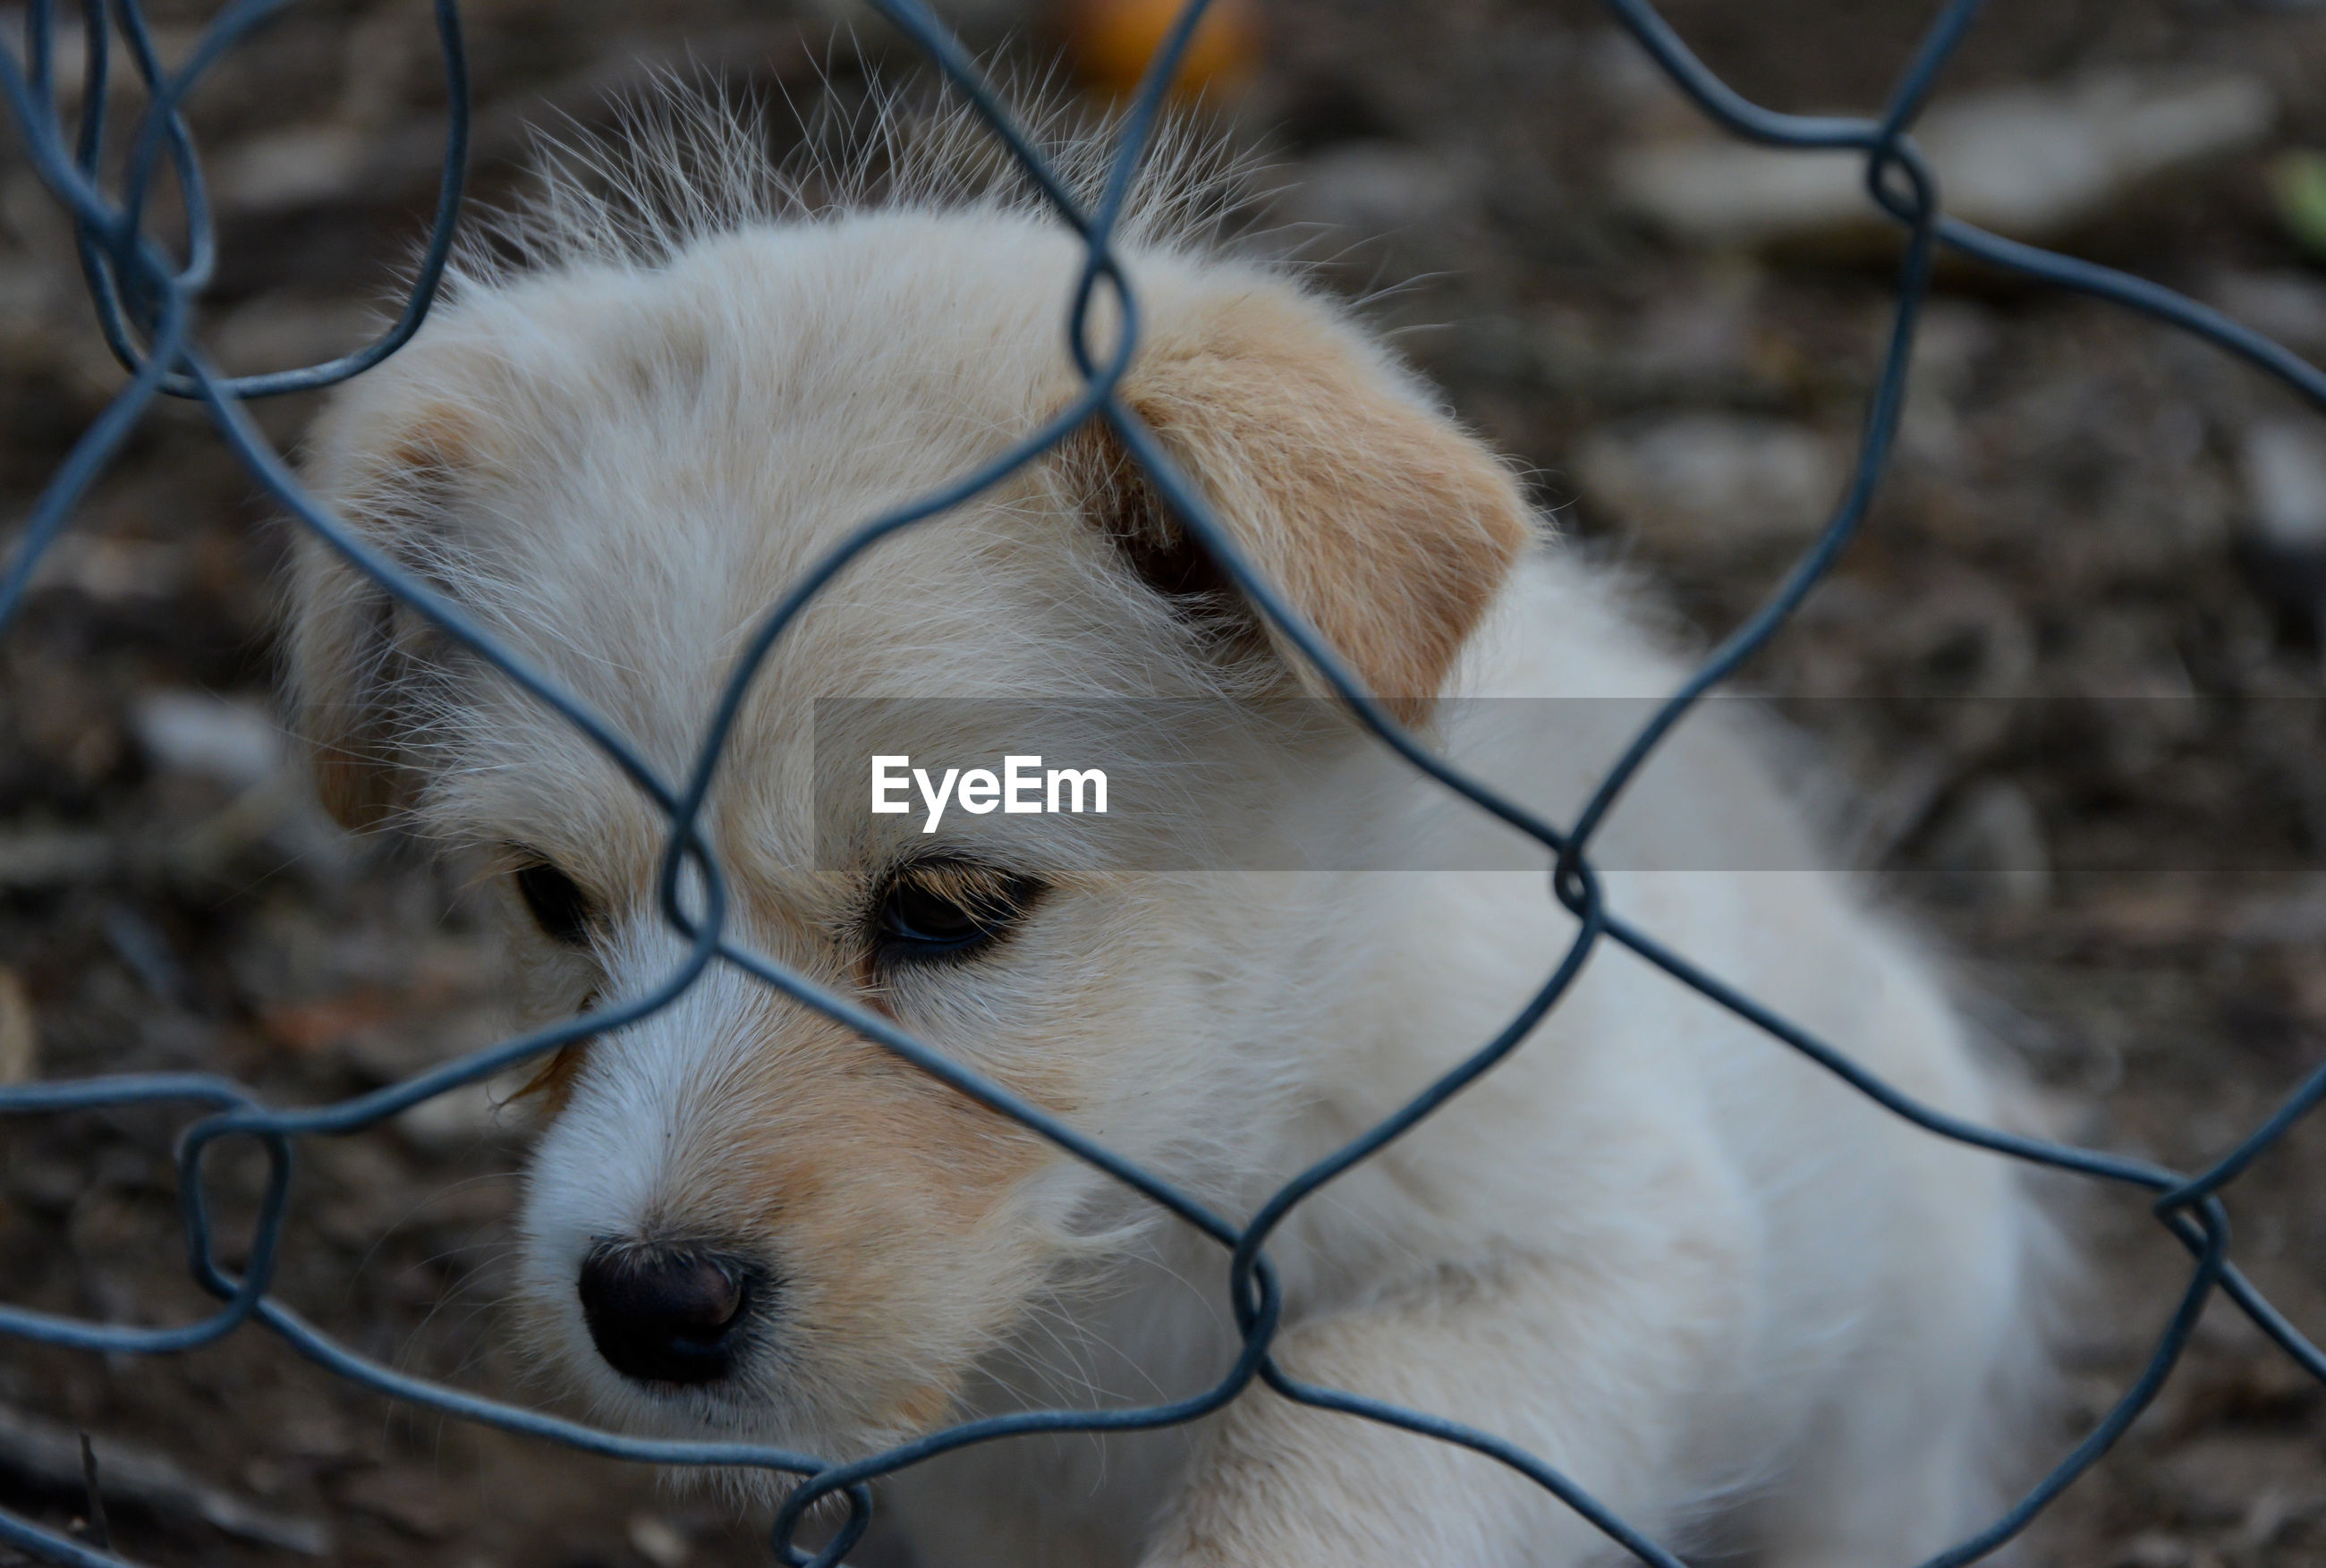 Close-up of dog seen through fence